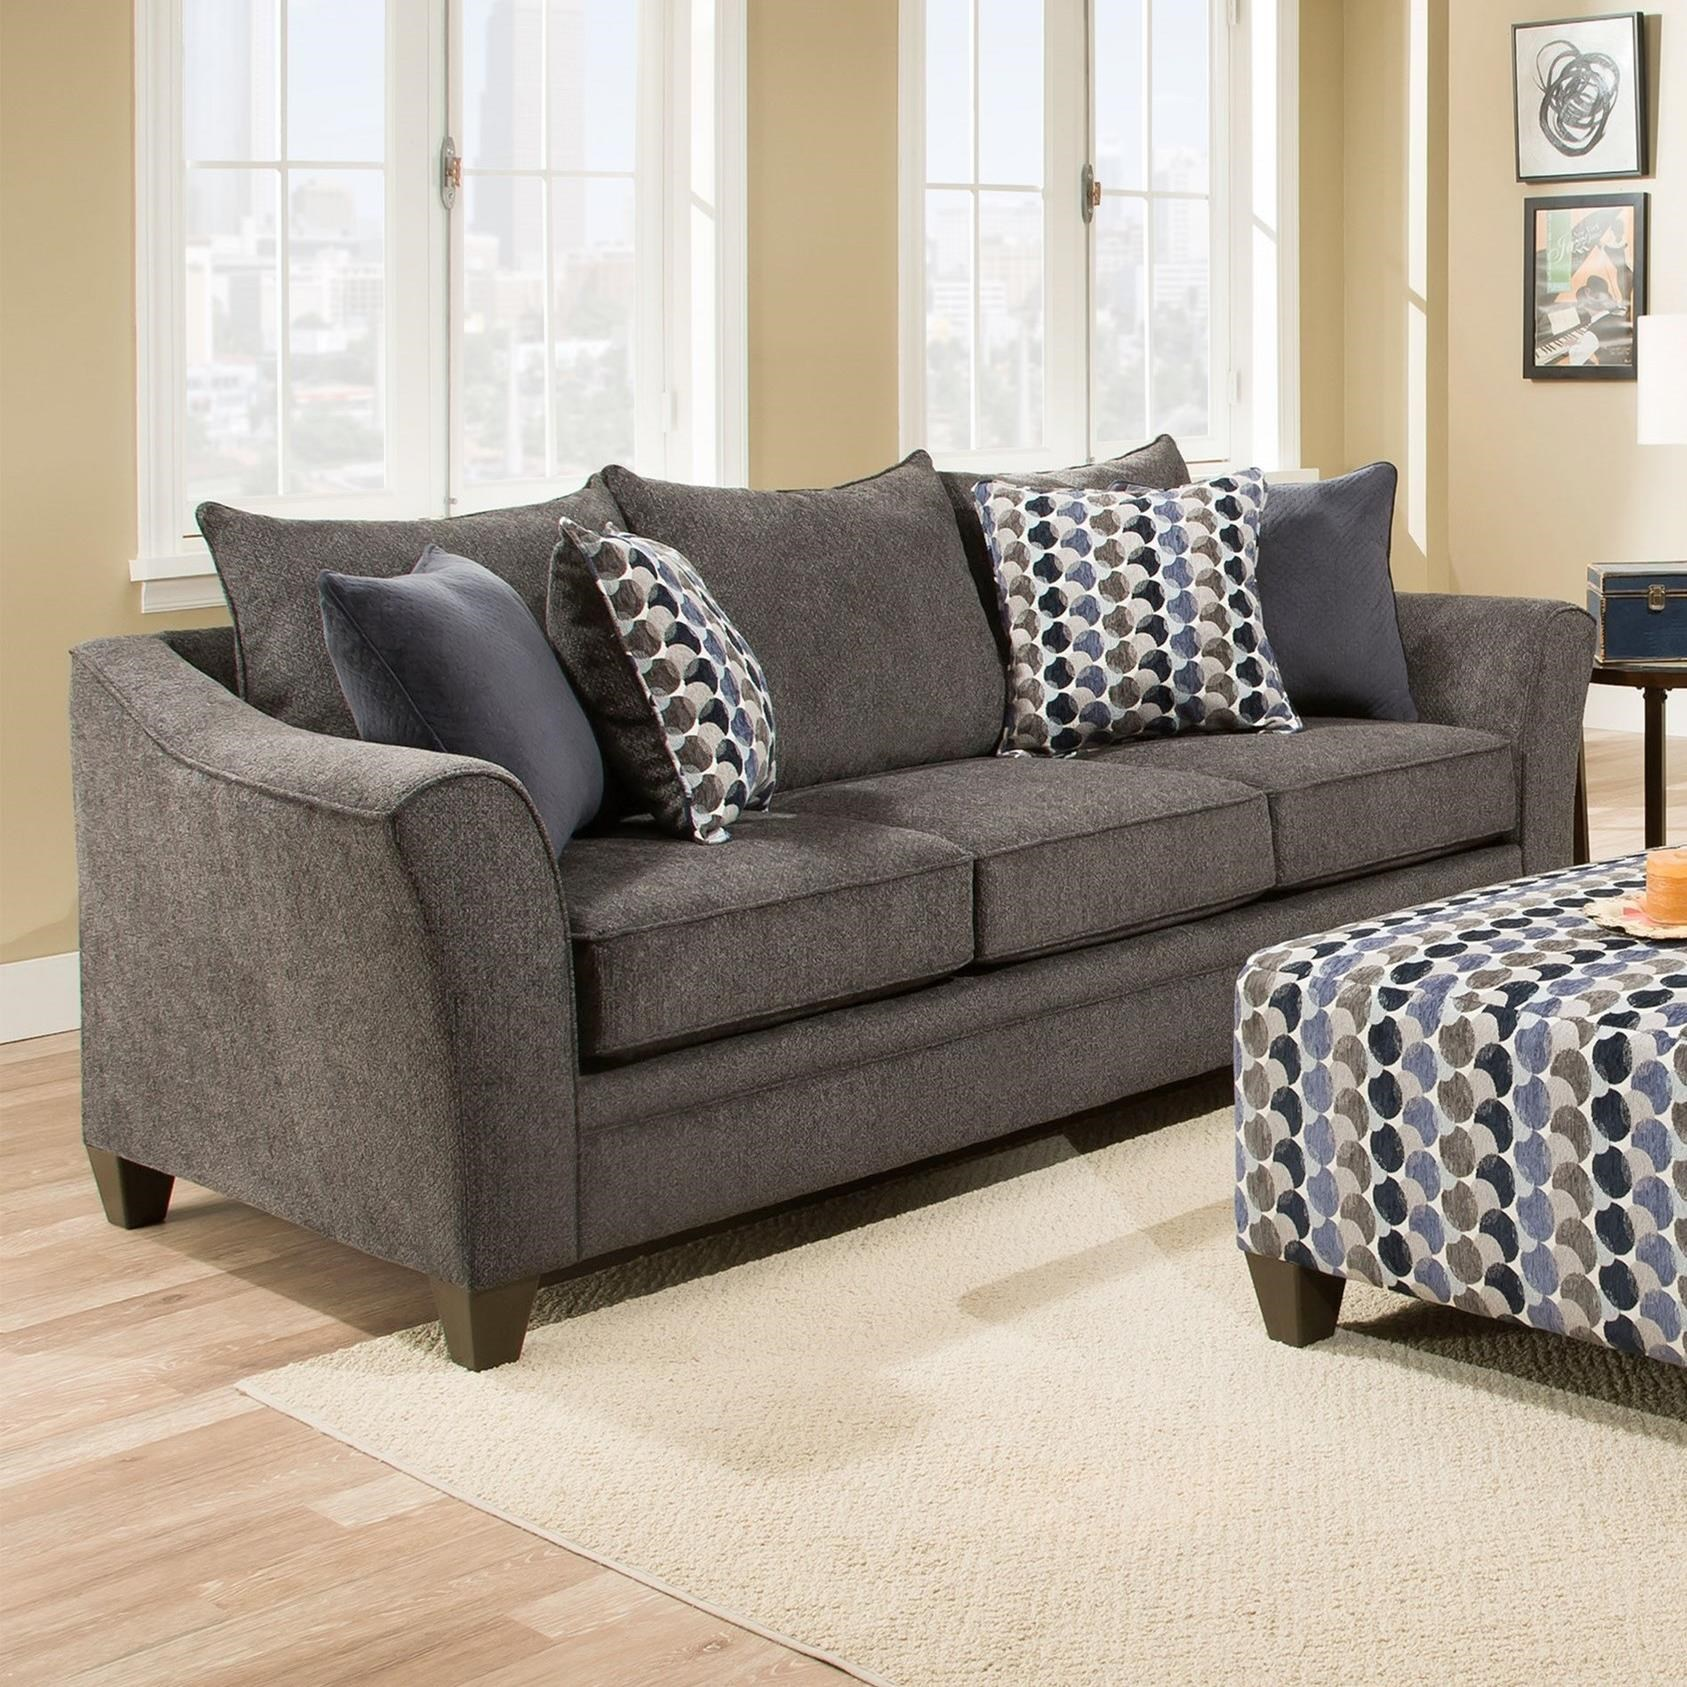 United Furniture Industries 6485Transitional Sofa ...